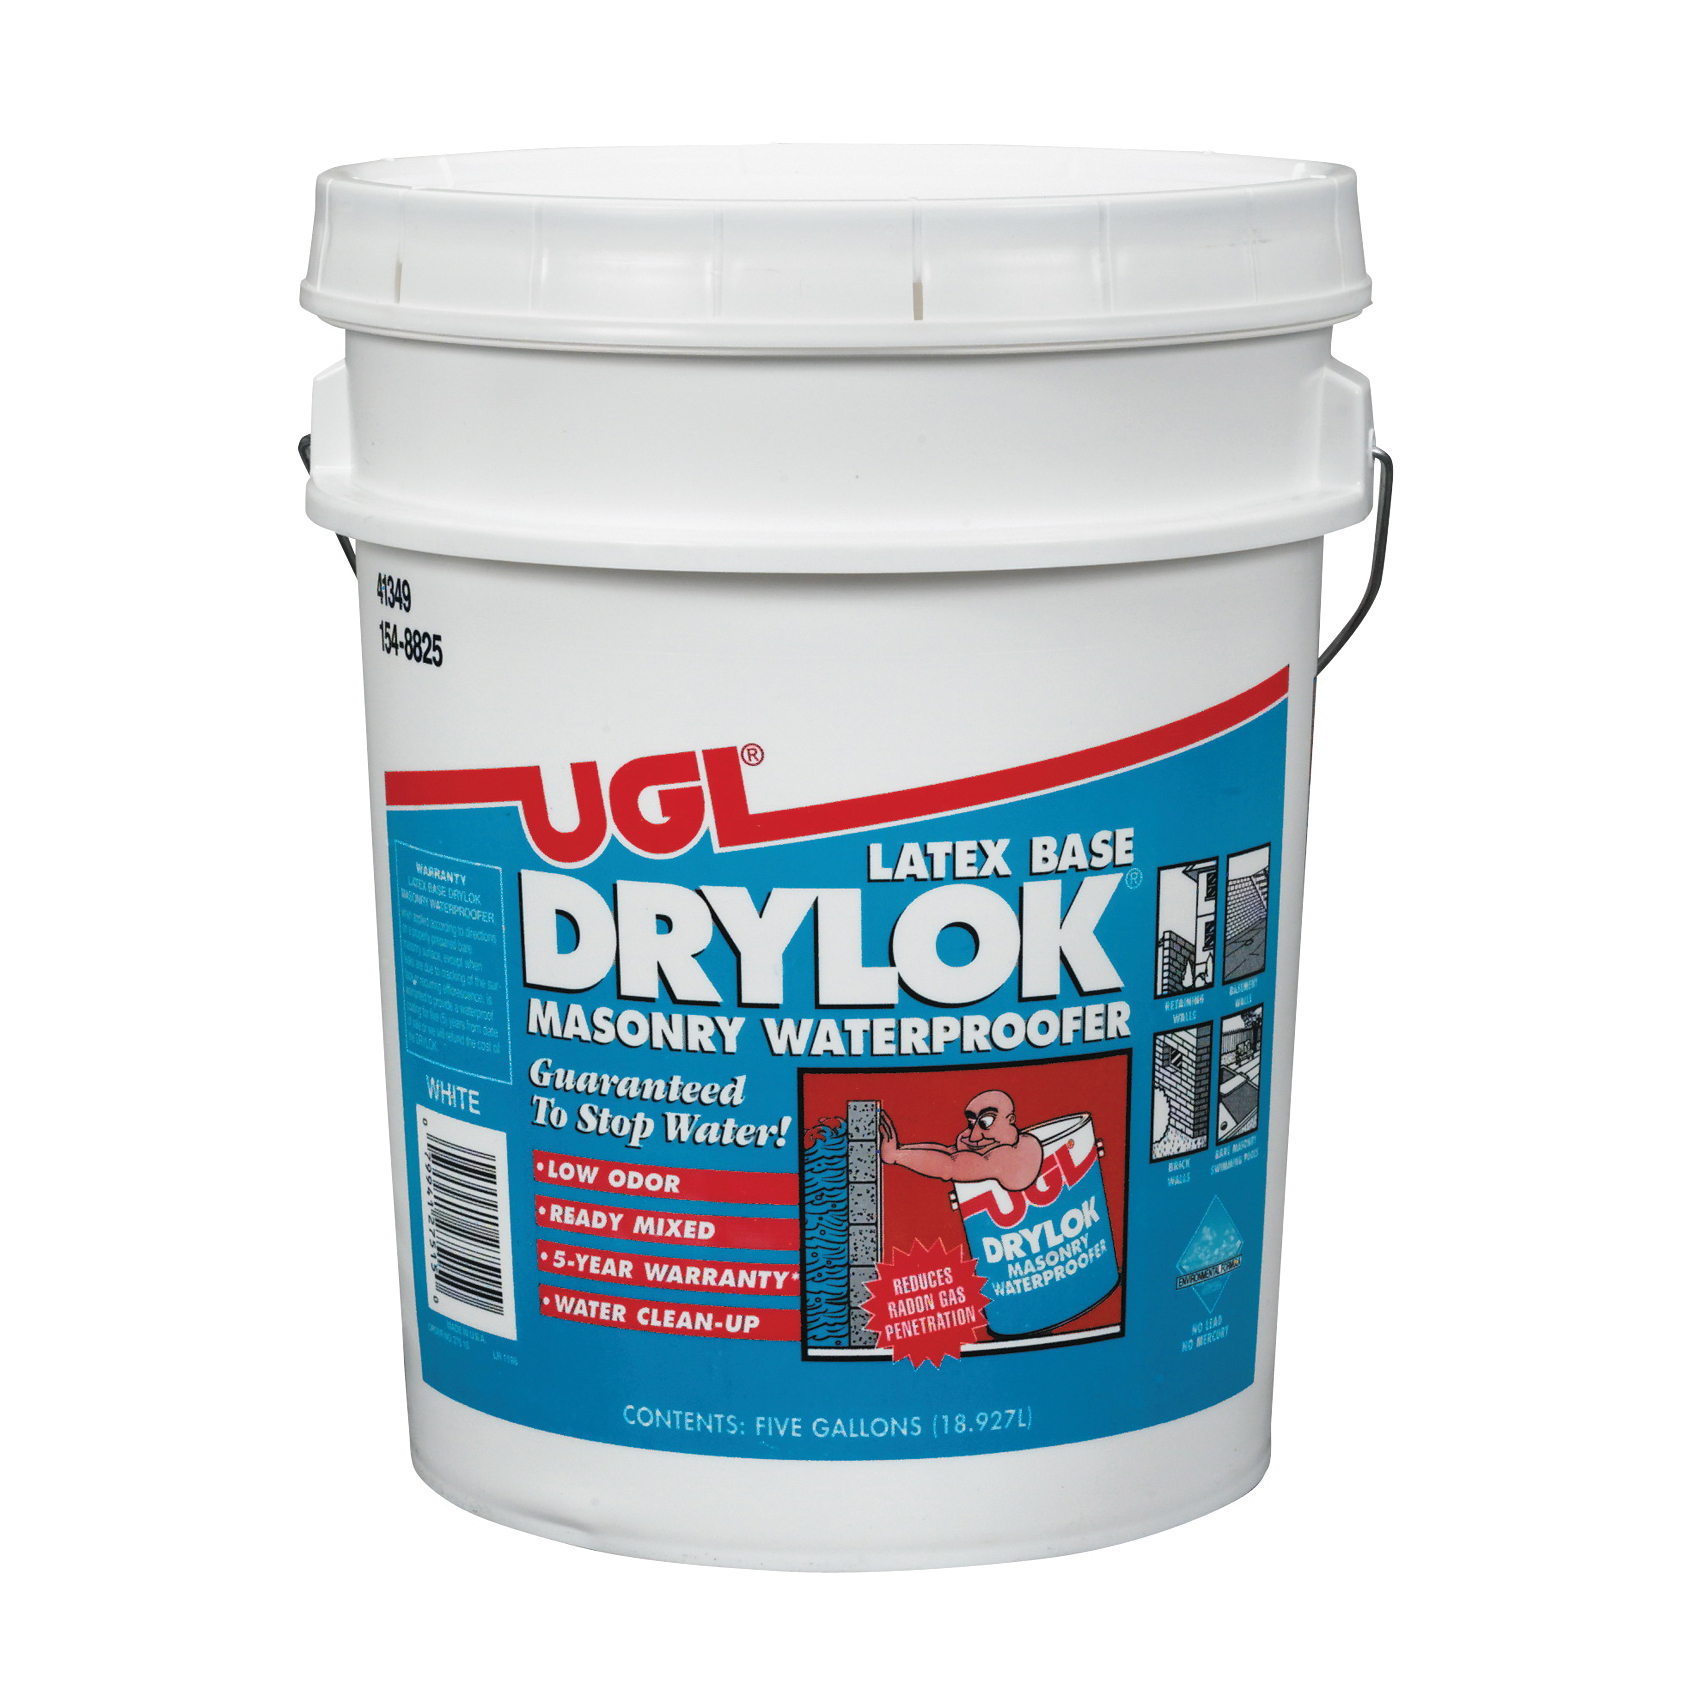 Picture of UGL DRYLOK 27515 Masonry Waterproofer, White, Liquid, 5 gal Package, Pail